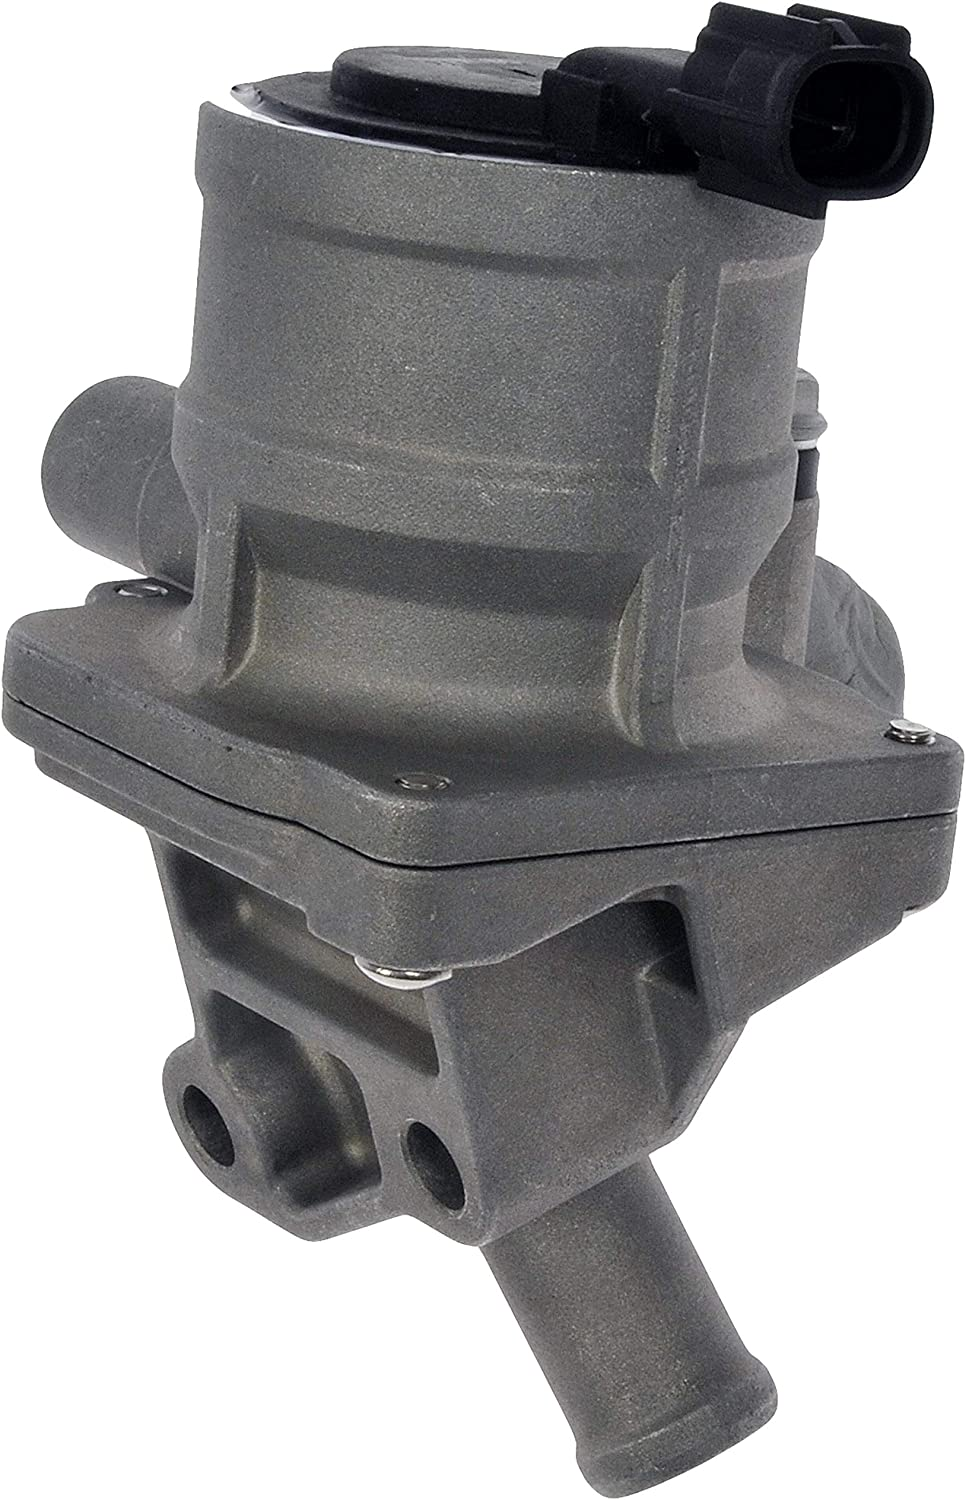 Dorman 911-644 Secondary Air Injection Control Valve for Select Lexus/Toyota Models